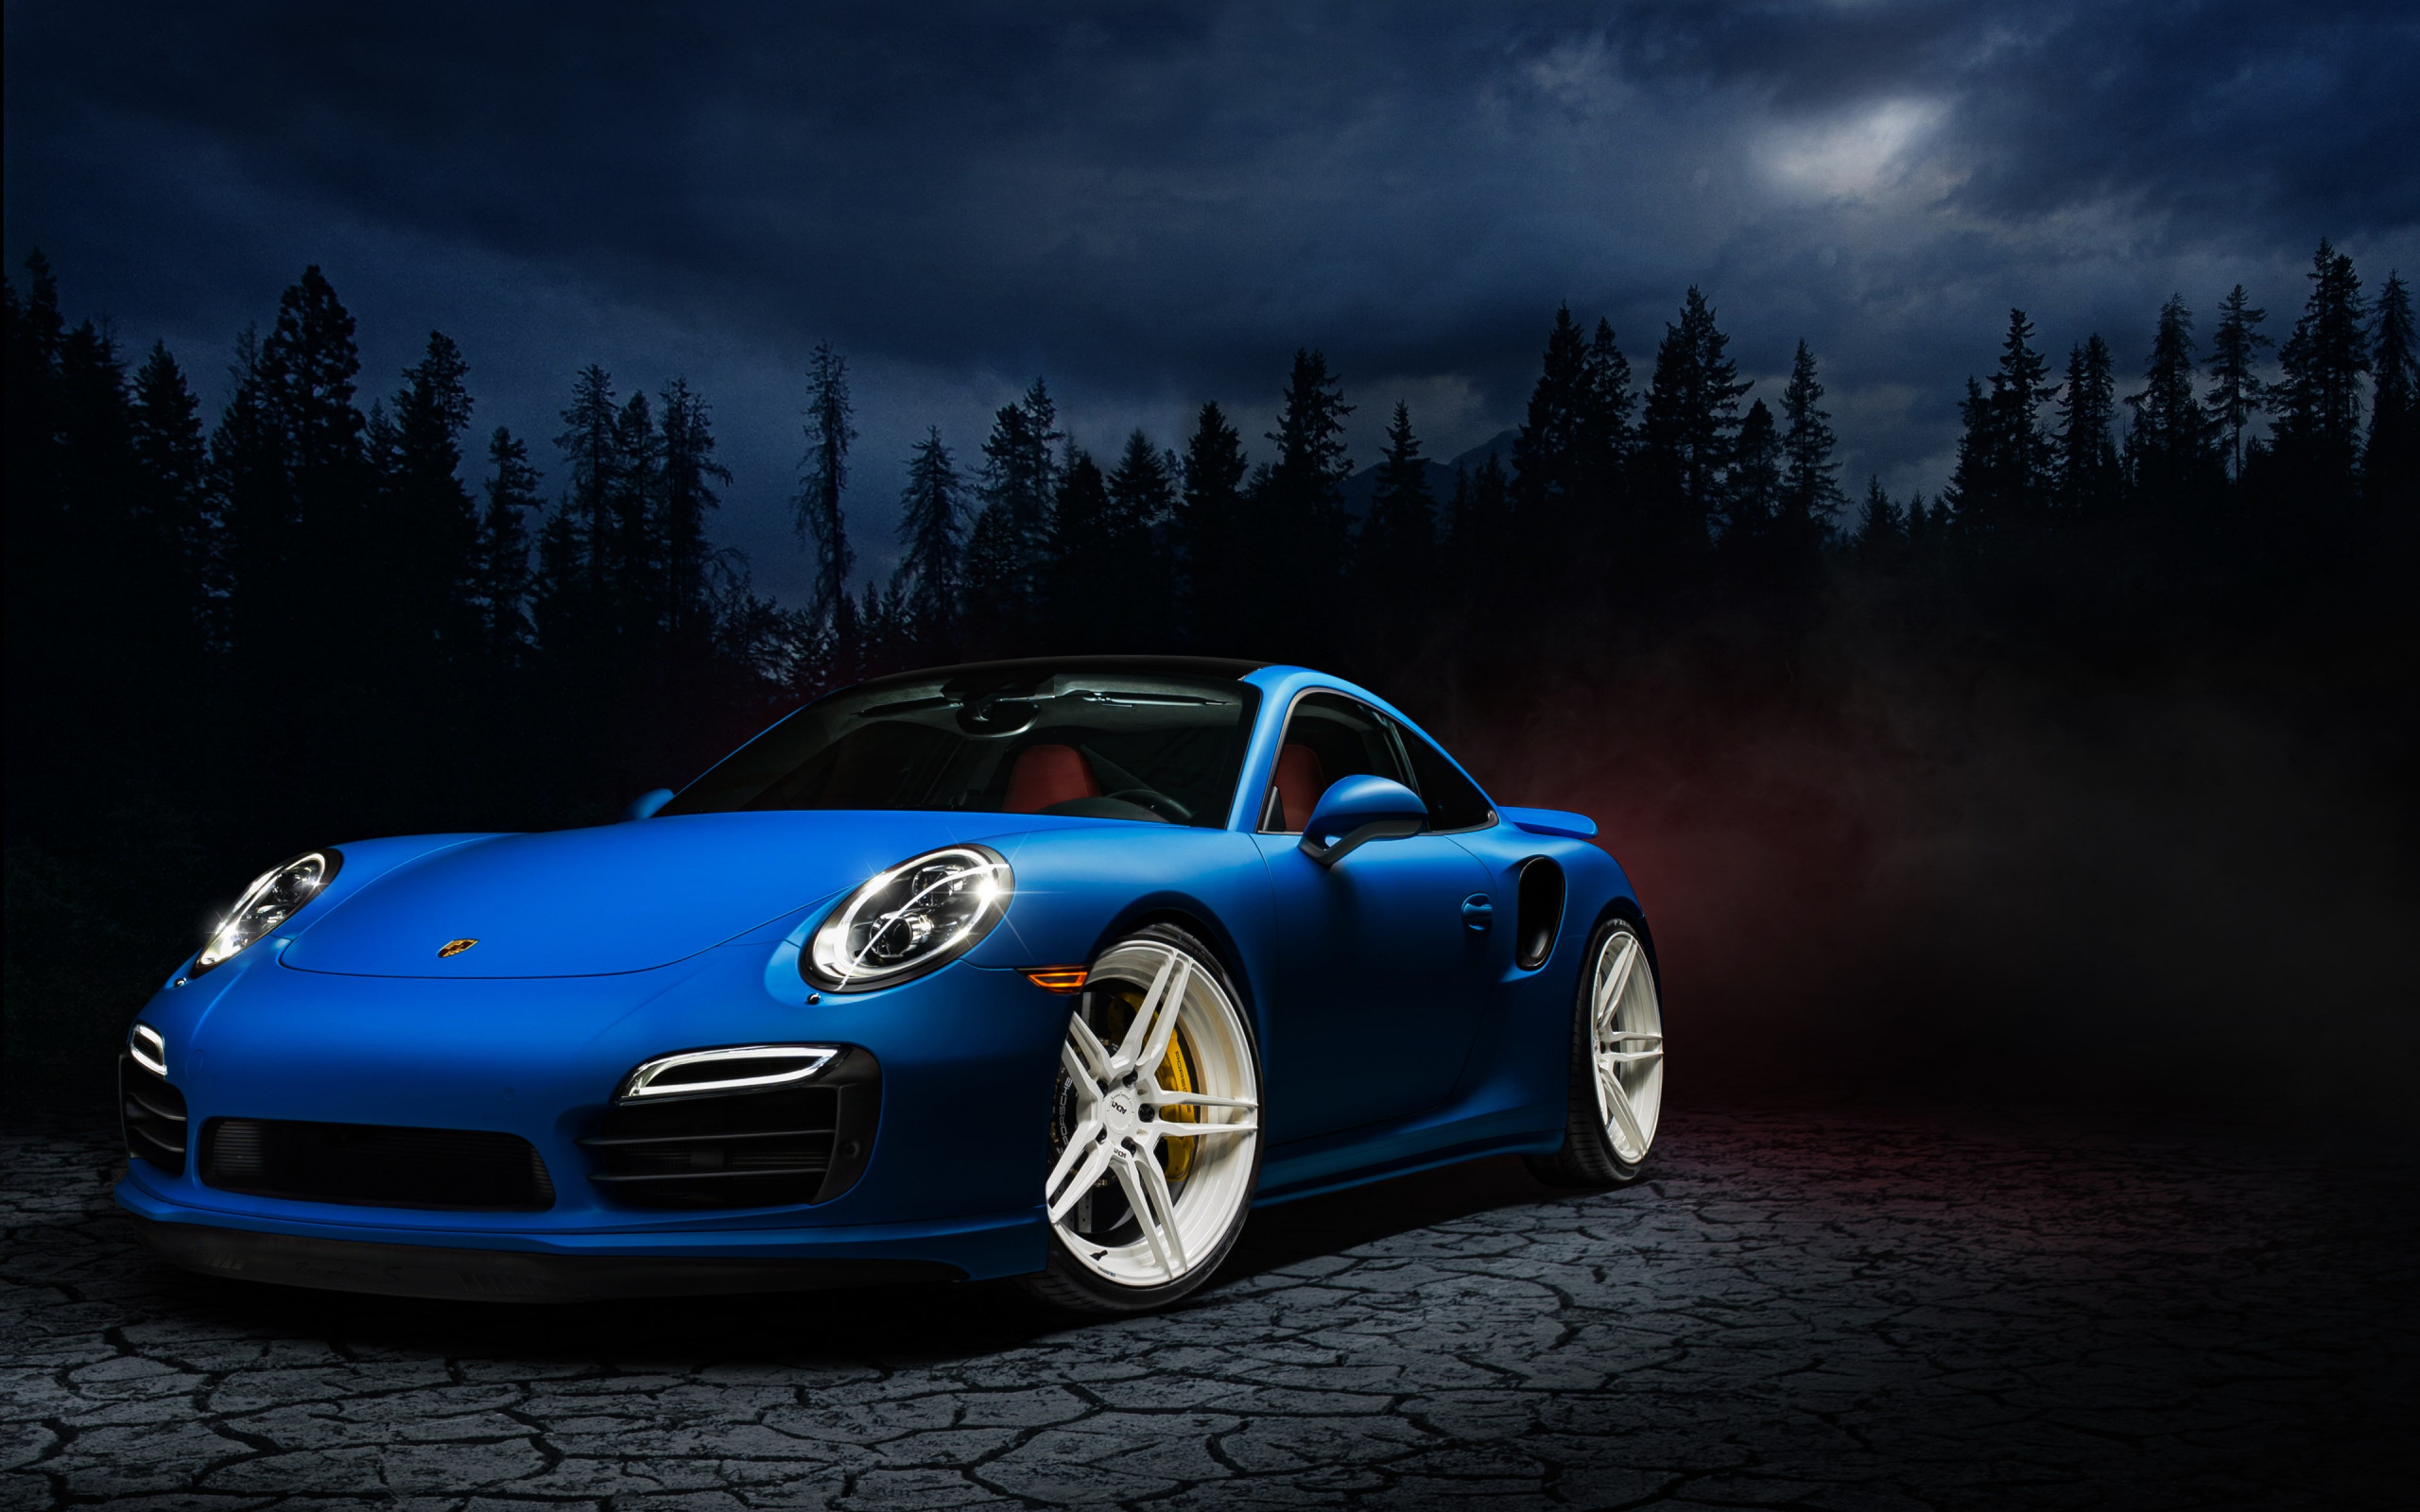 Porsche 911 blue wallpaper 2560x1600